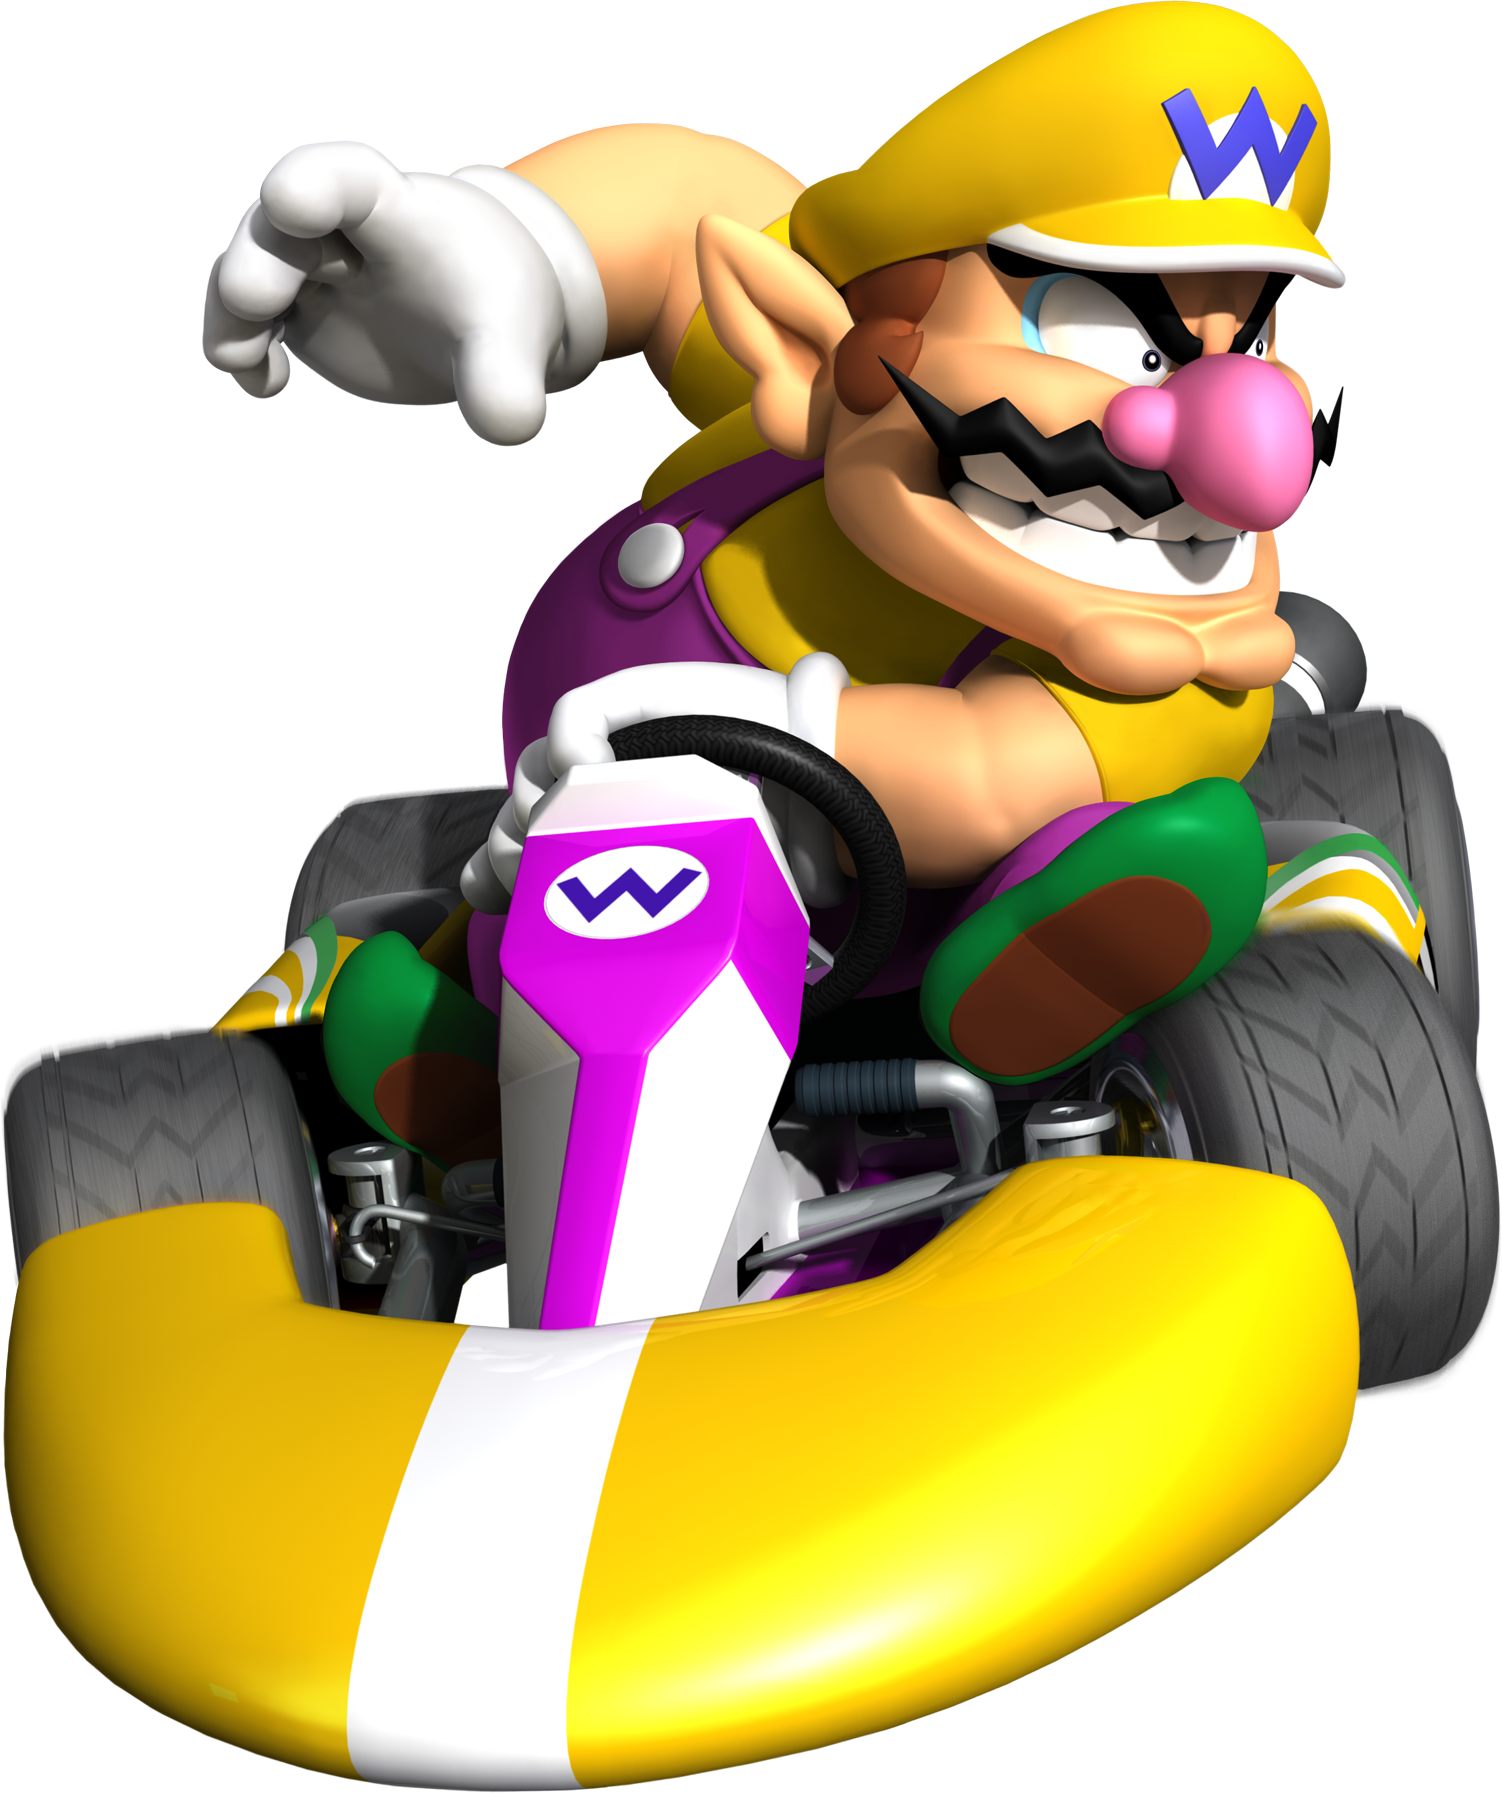 wario mario kart racing wiki fandom powered by wikia. Black Bedroom Furniture Sets. Home Design Ideas